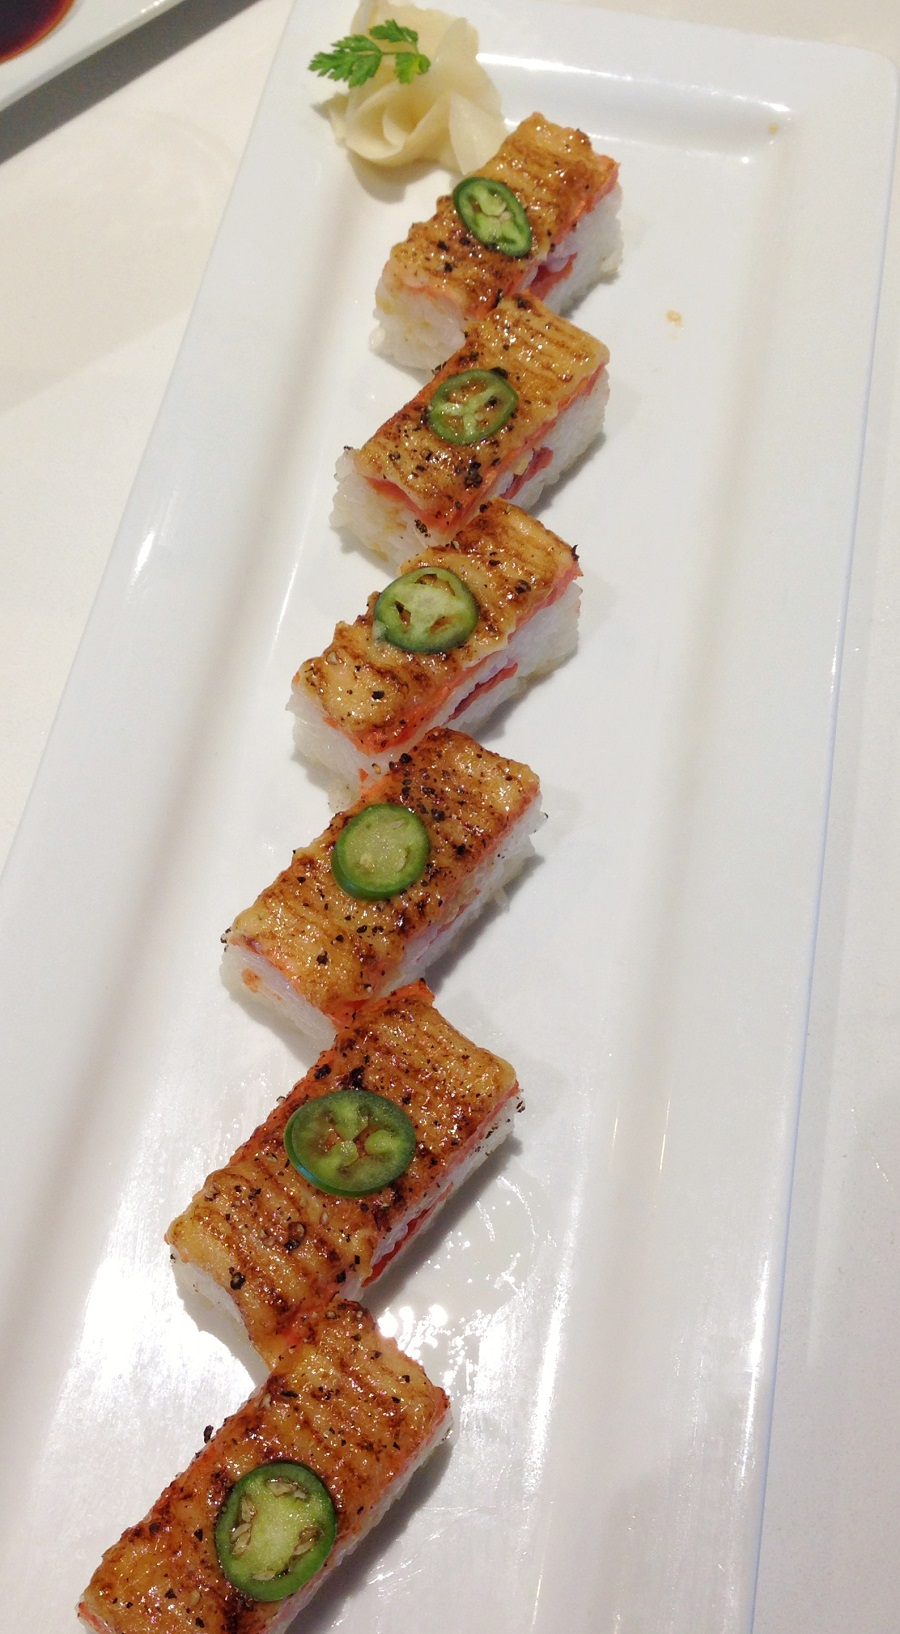 Sushi topped with jalapeno on white plate